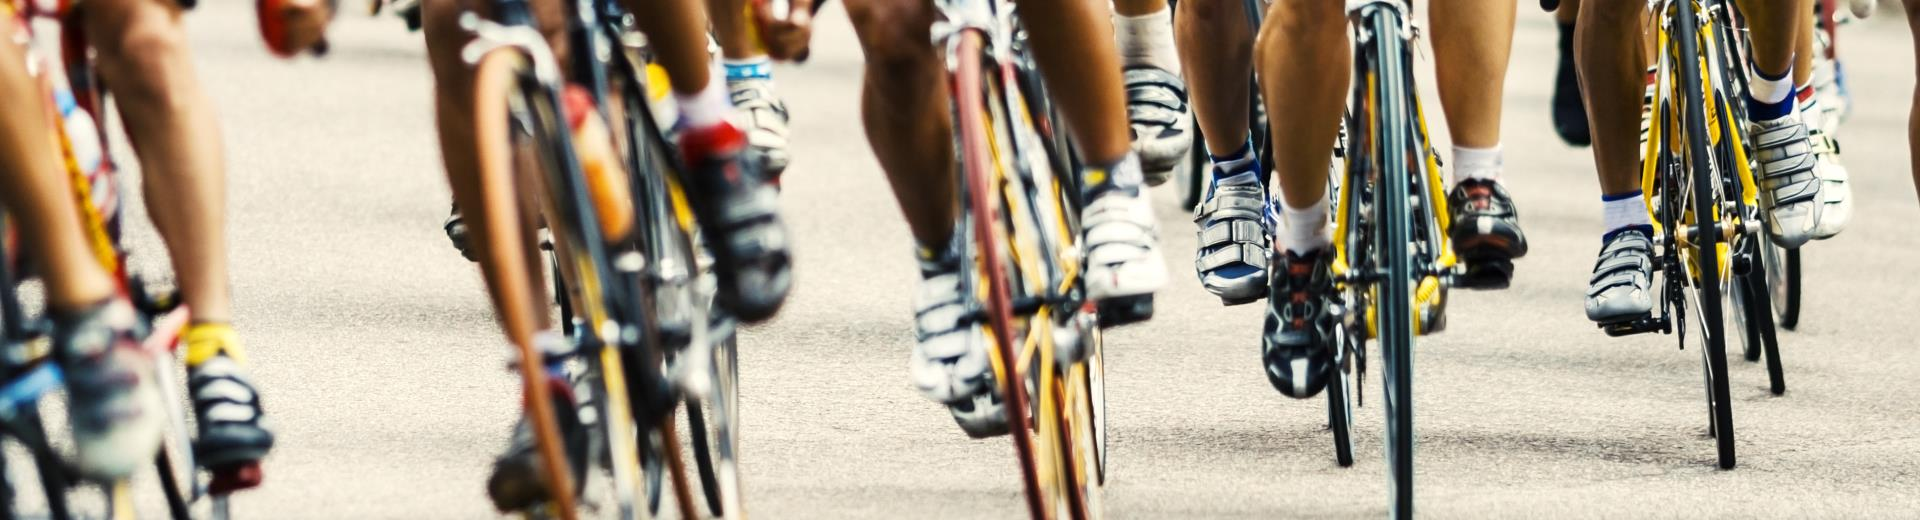 Best Western Plus Hotel Galileo is waiting to host you during cycling event Granfondo Padua